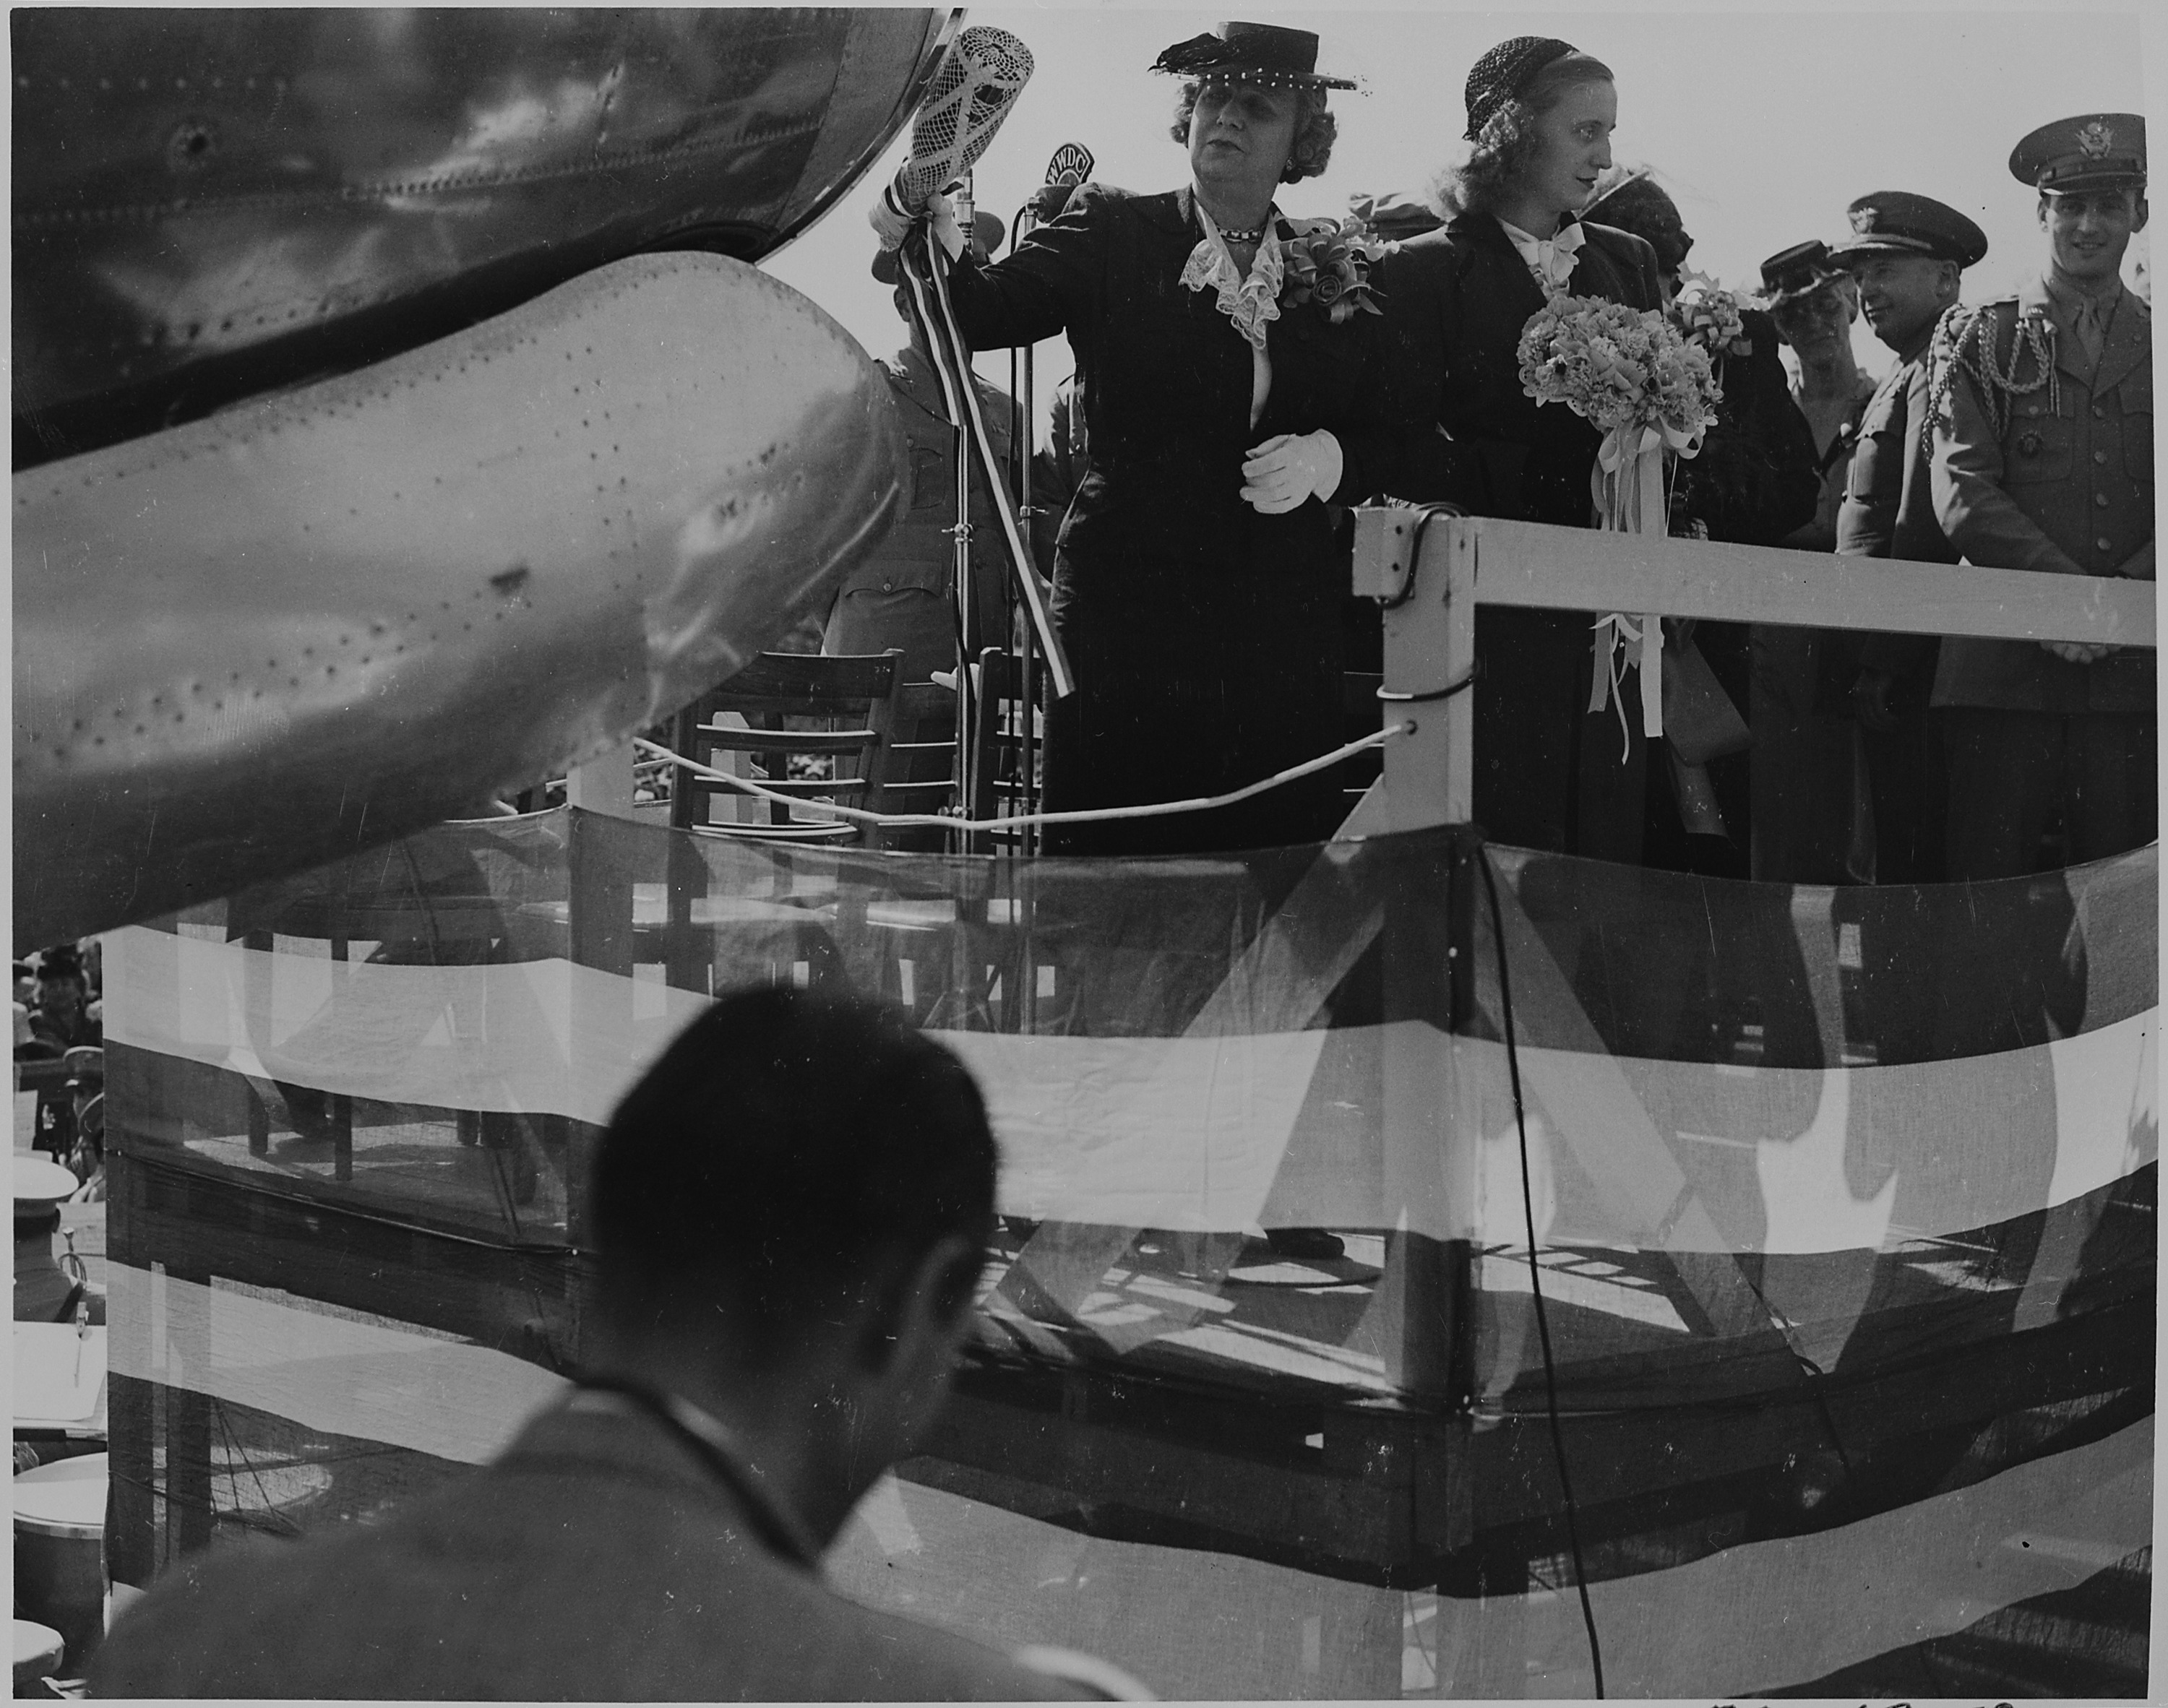 https://upload.wikimedia.org/wikipedia/commons/f/f8/Bess_Truman_christens_an_airplane_with_a_bottle_of_champagne._Margaret_Truman_is_beside_her._-_NARA_-_199103.jpg